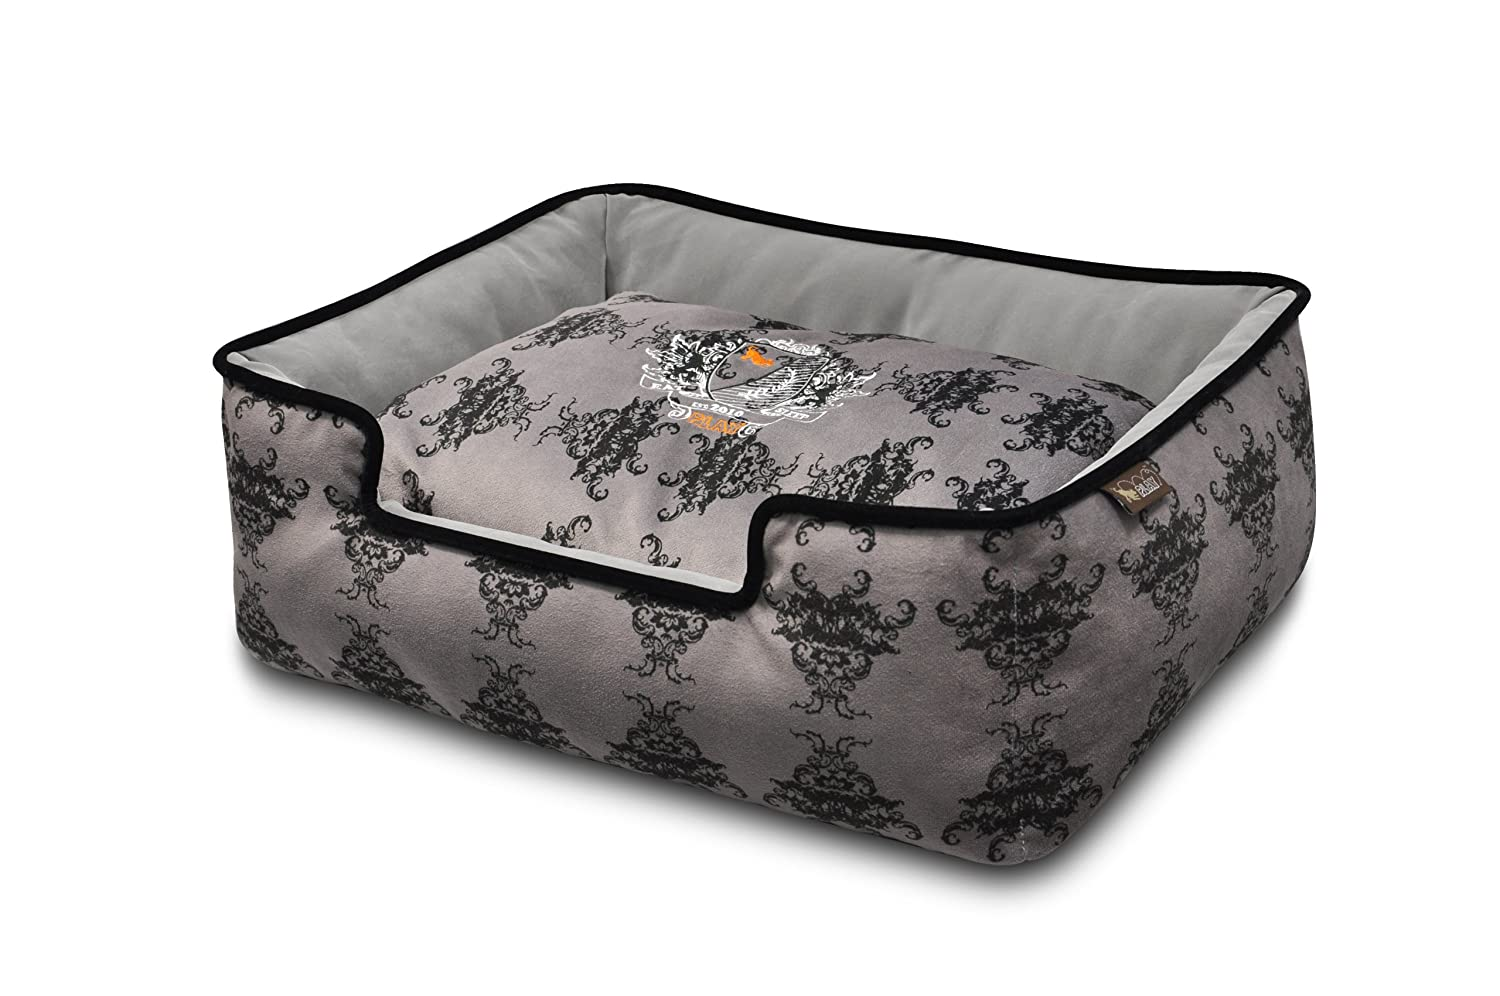 Royal crest black Medium Royal crest black Medium P.L.A.Y. 817152012030 Pet Lifestyle and You Royal Crest Black Lounge Bed, Medium